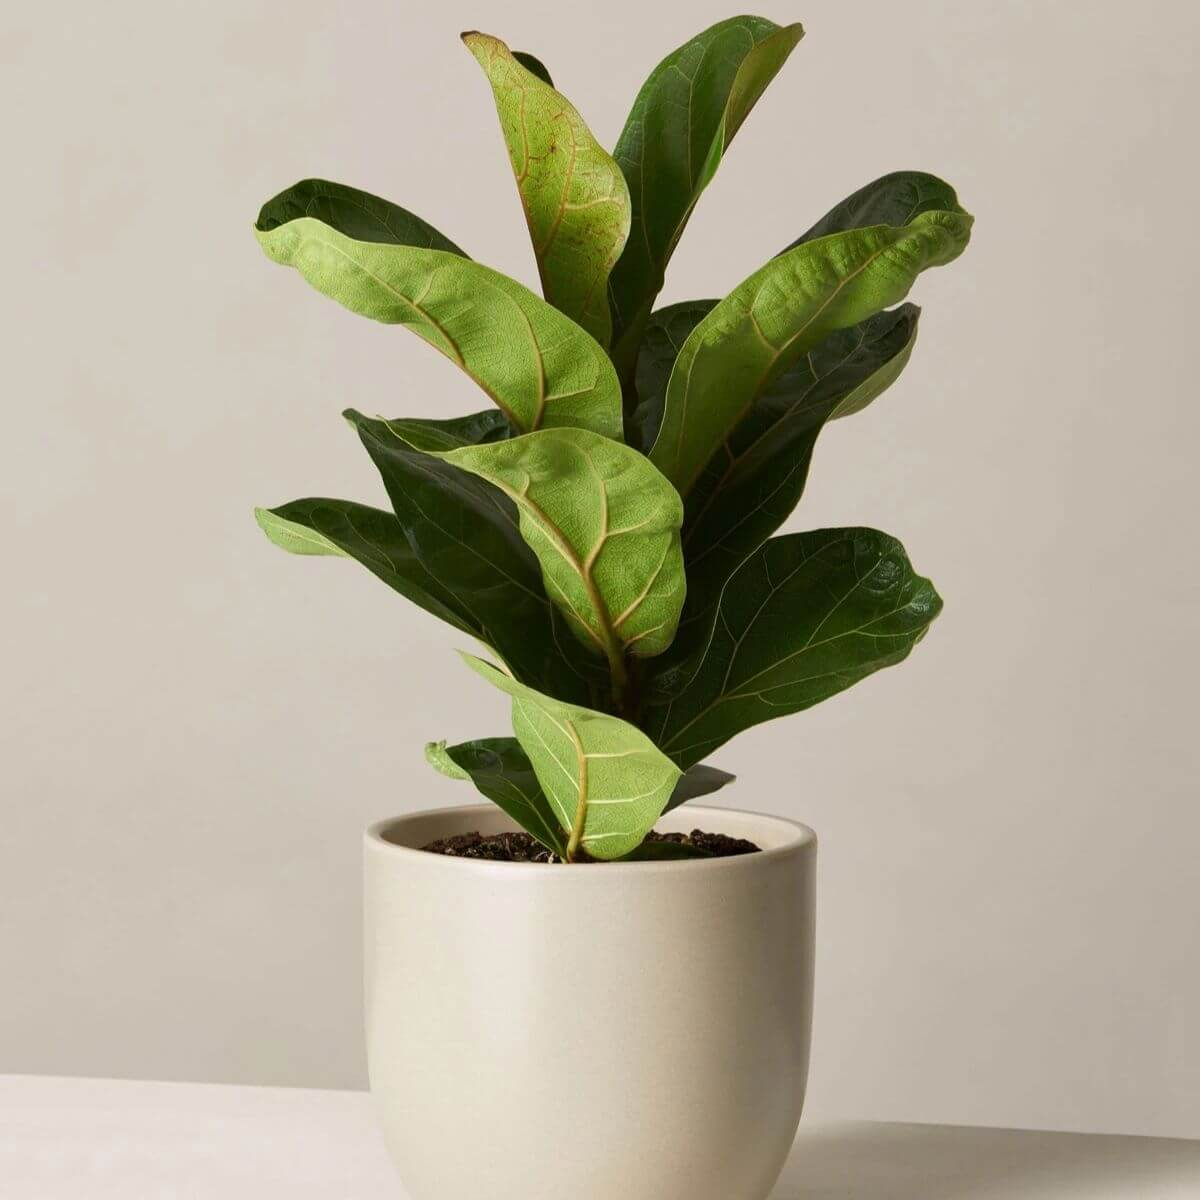 Fiddle leaf fig in a grey pot.